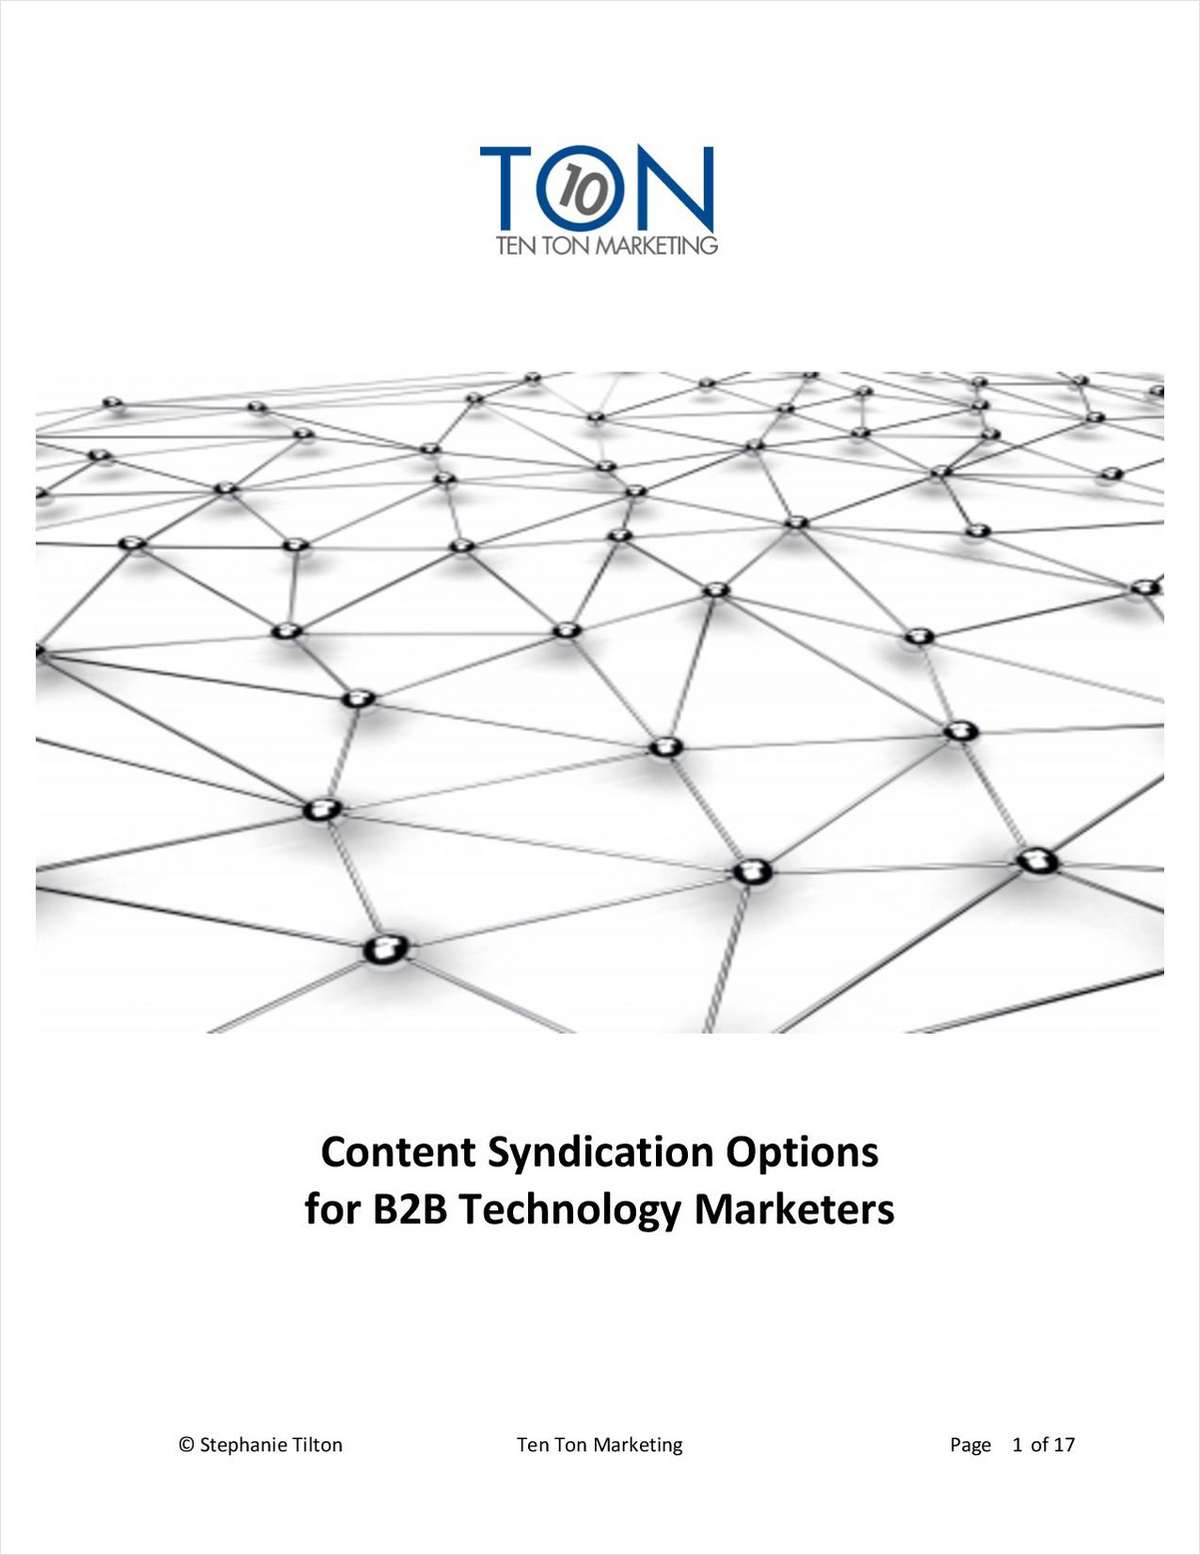 Content Syndication Options for B2B Technology Marketers